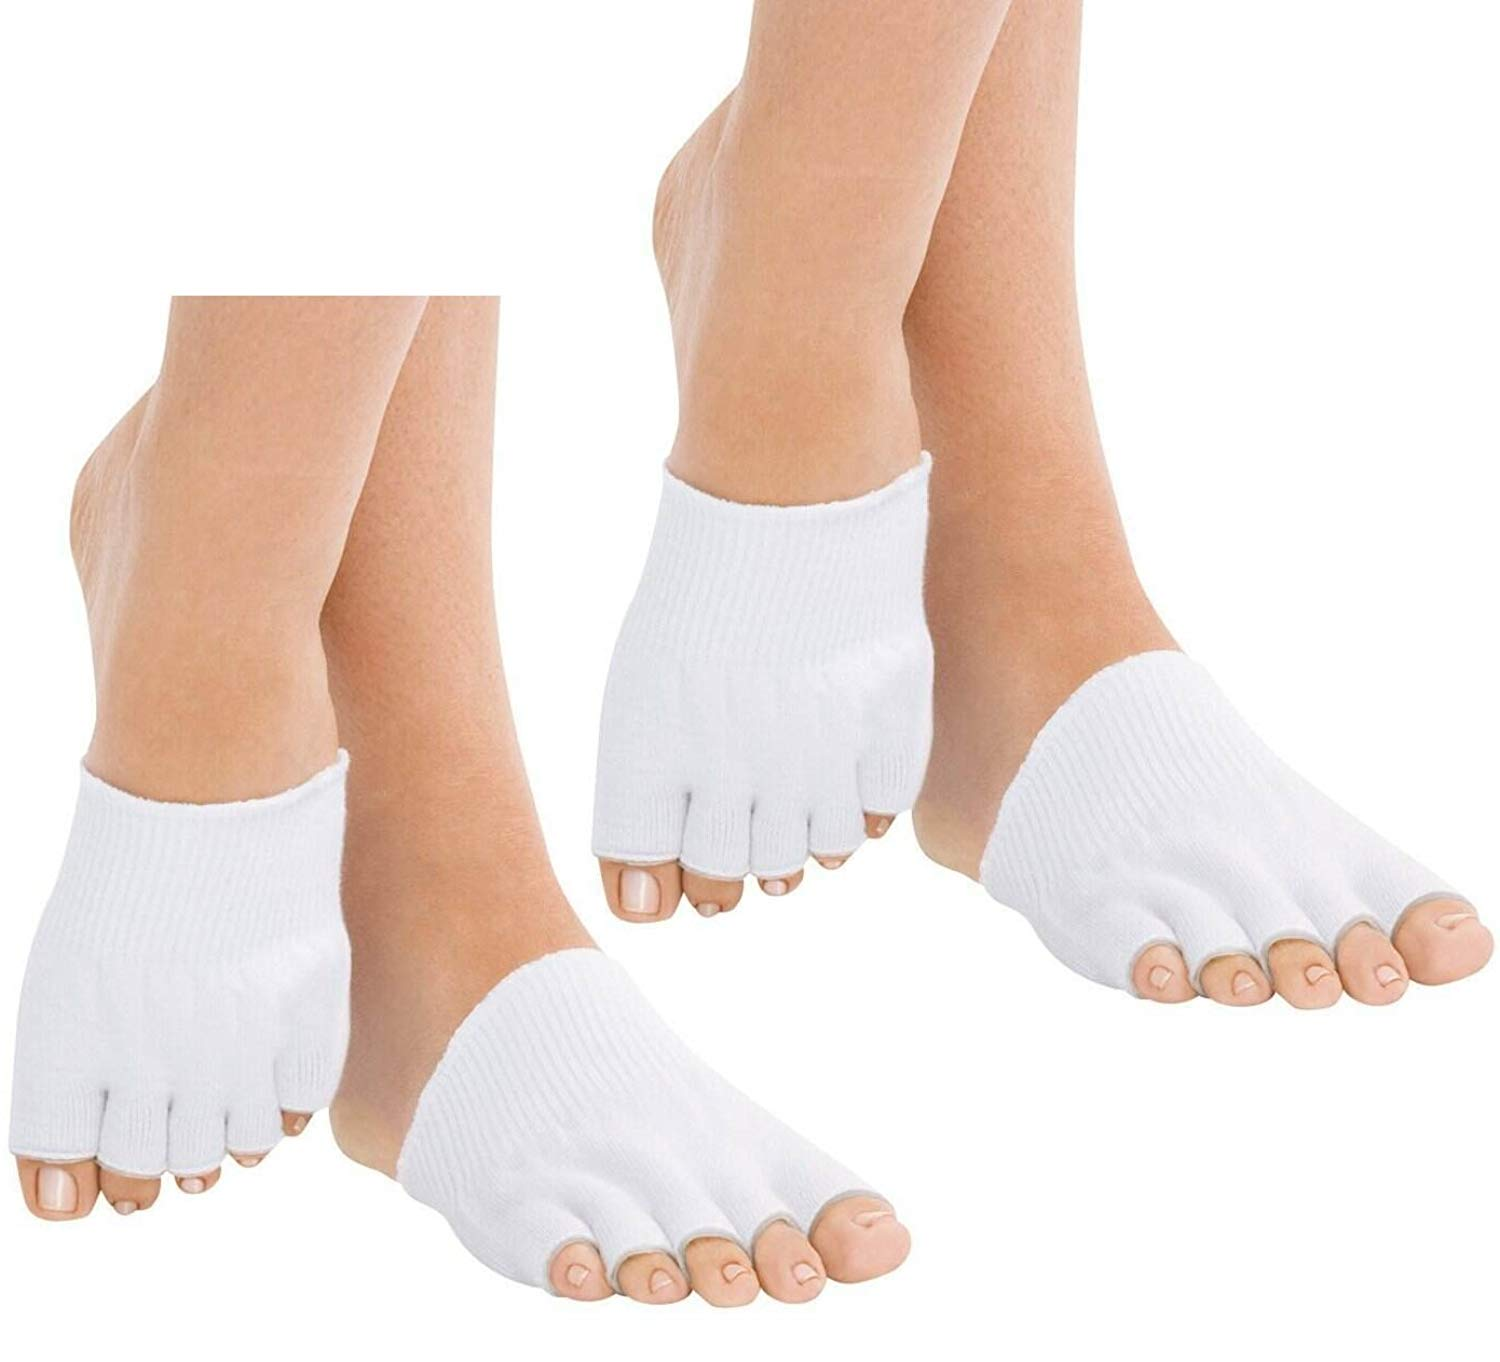 9cb7998764f Get Quotations · TASOM Toe Gel Socks   Toe Alignment Socks - Toes  Spreaders